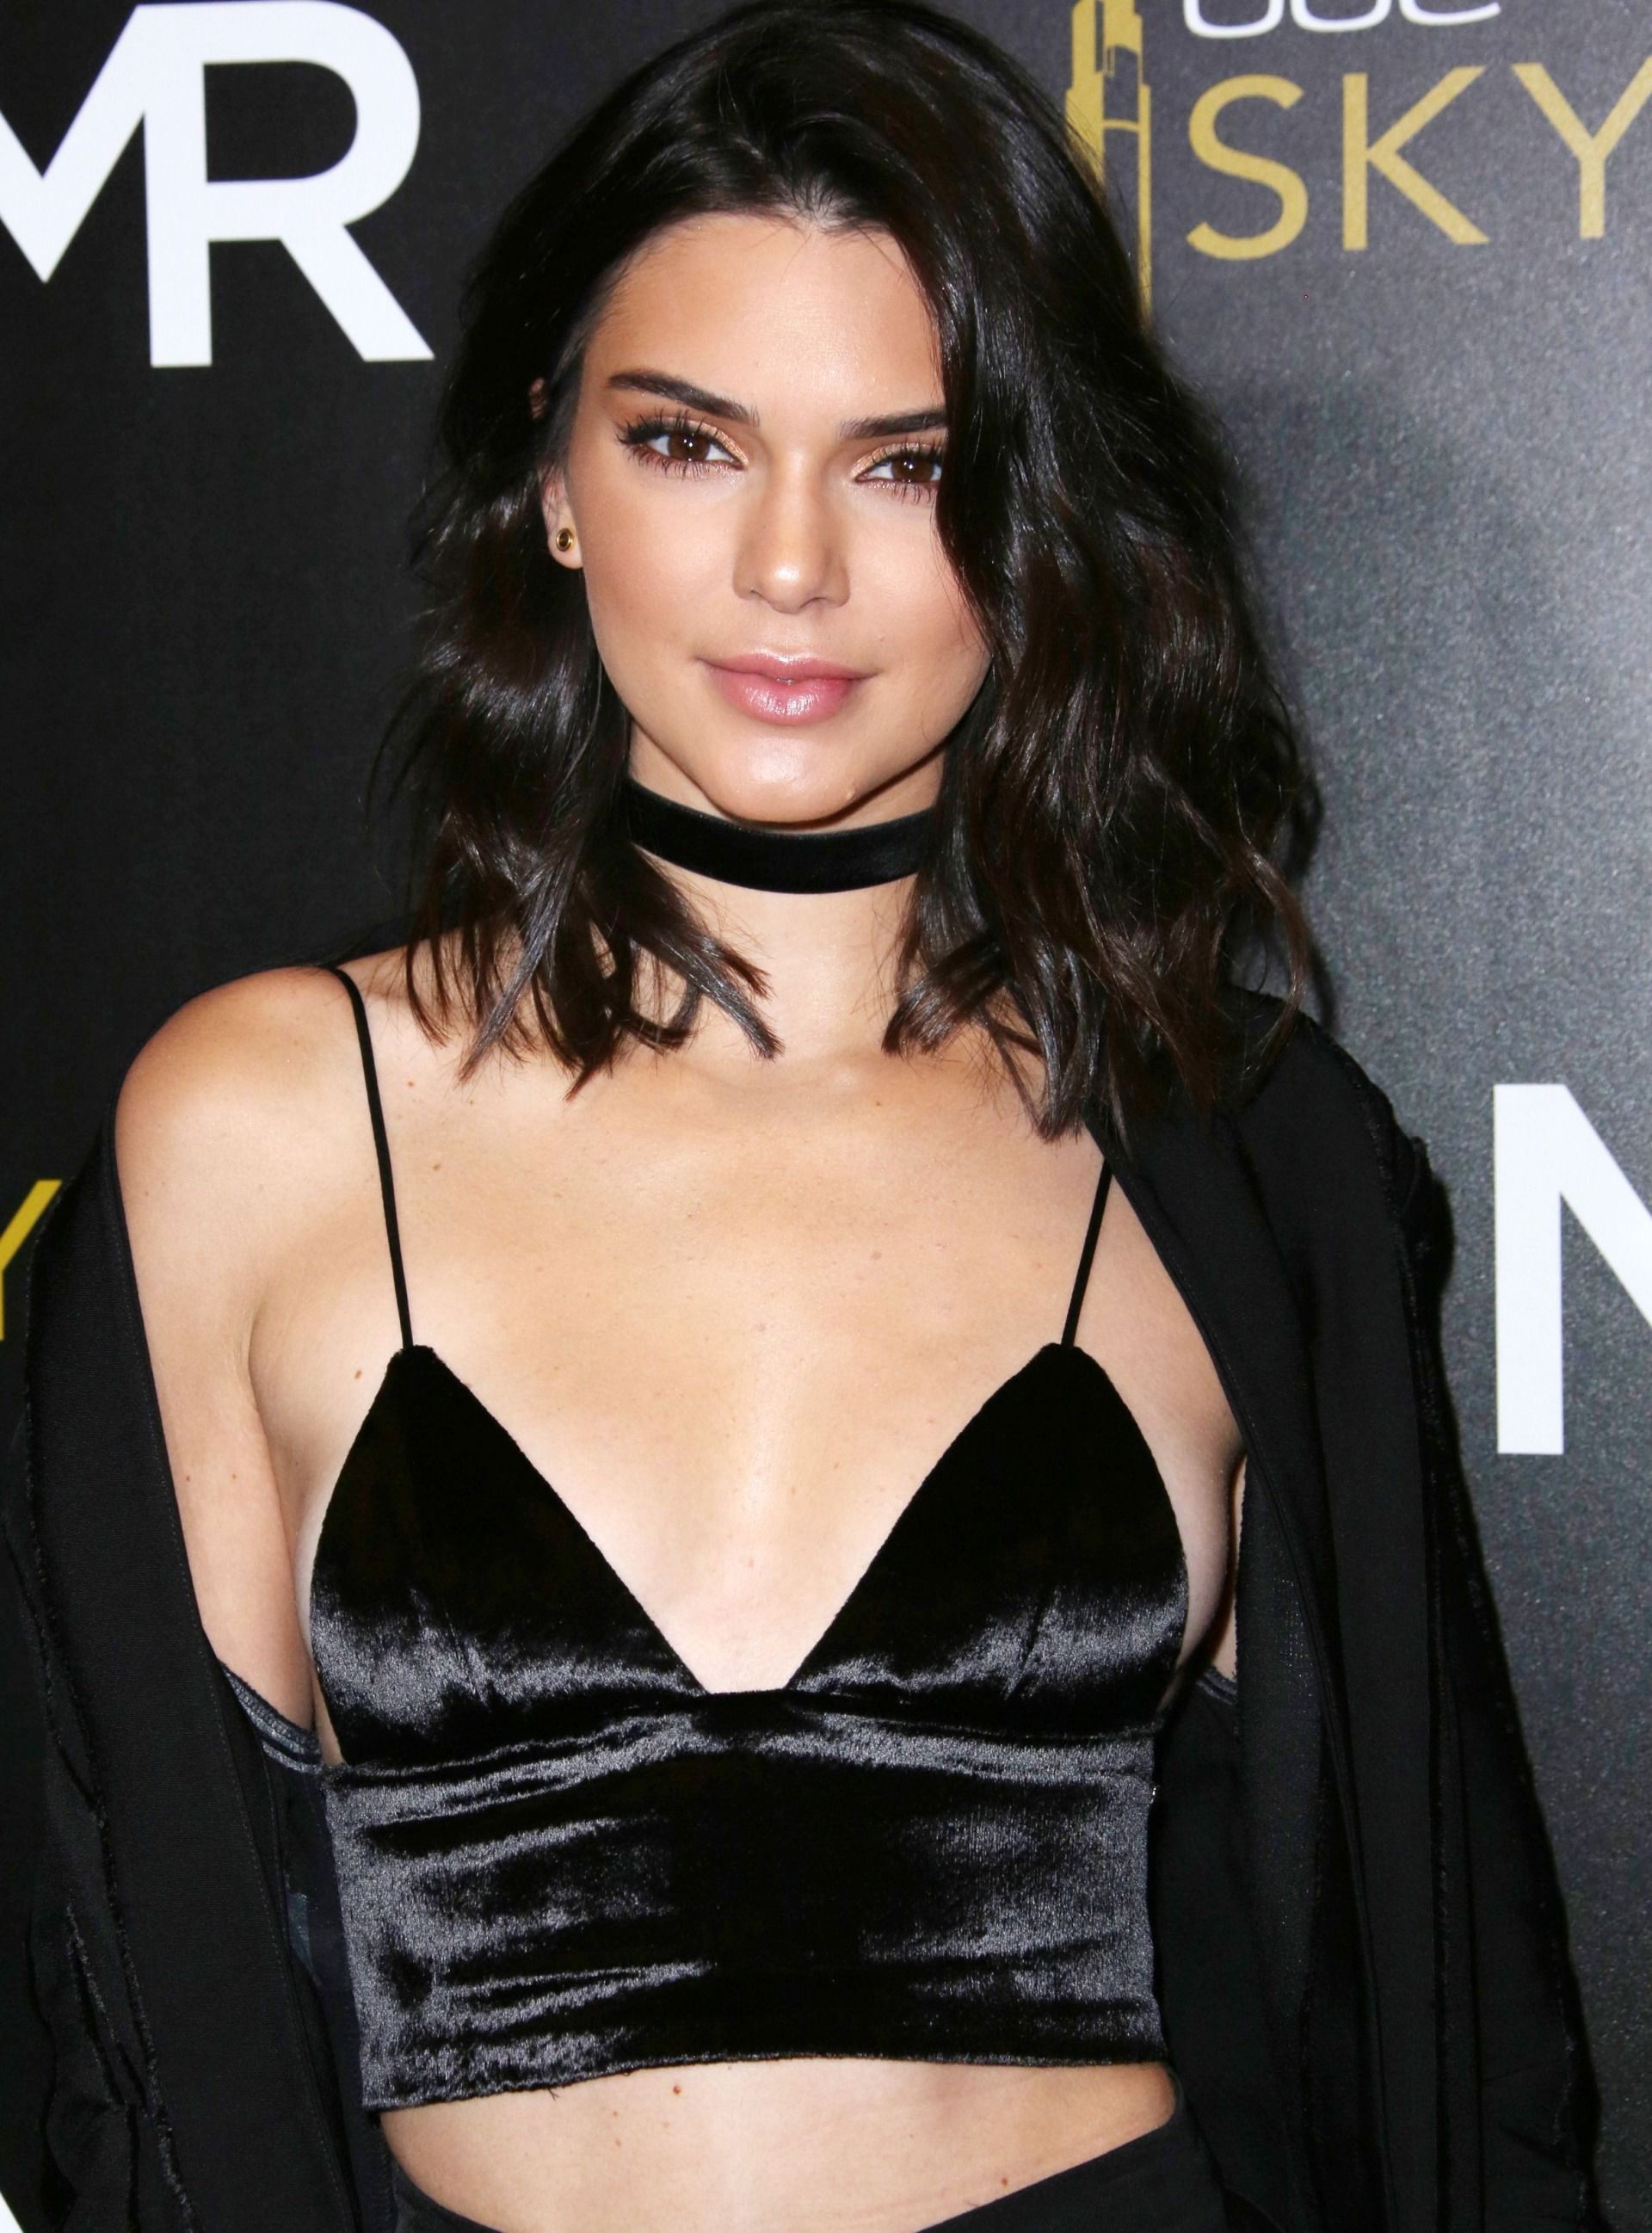 Kendall Jenner's Pierced Nipple Caught On Video At Coachella - 2019 year